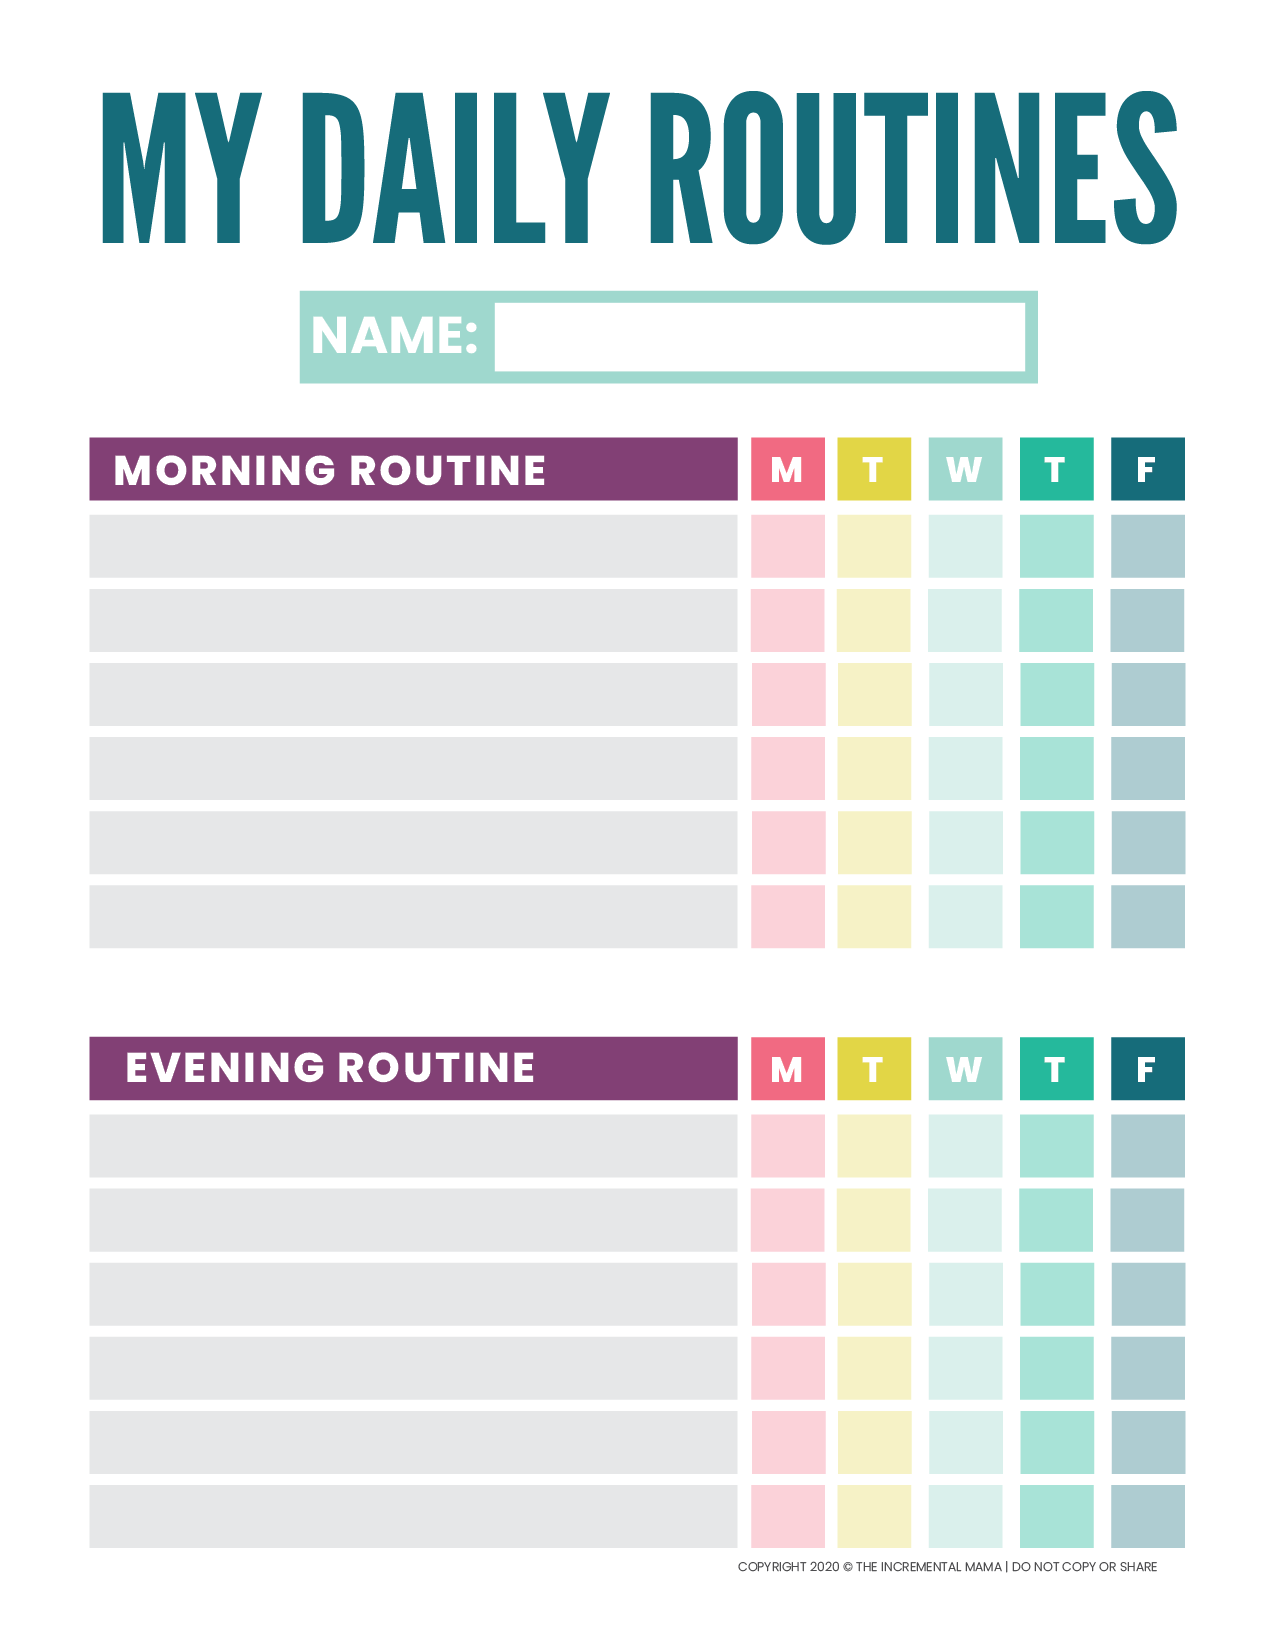 Free Printable Kid S Daily Routine Chart Template Daily Routine Chart Daily Routine Chart For Kids Daily Schedule Kids